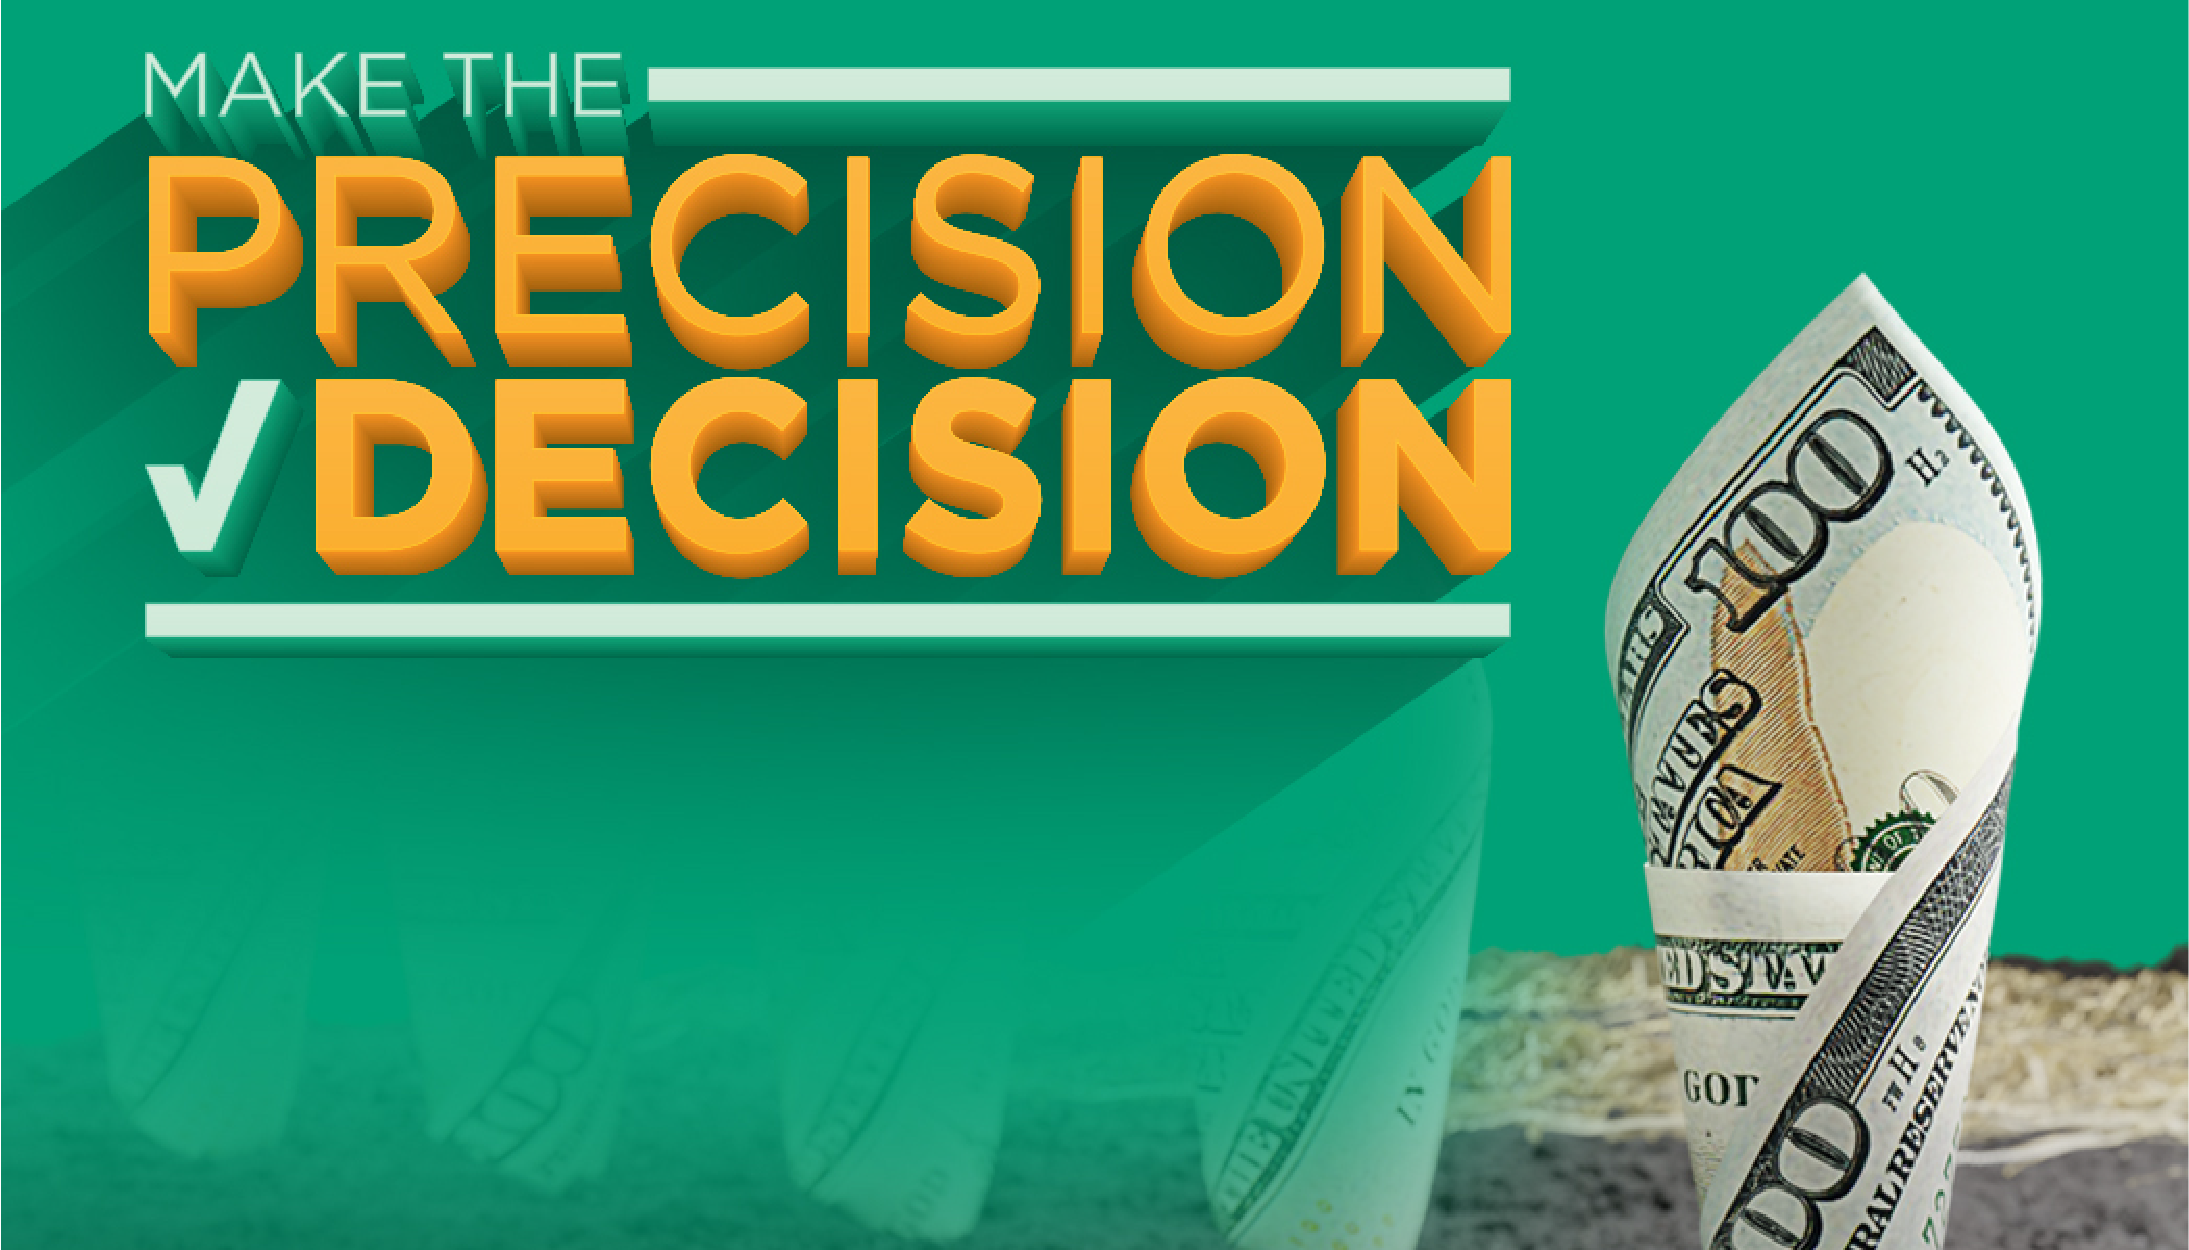 precision decision savings program 2020